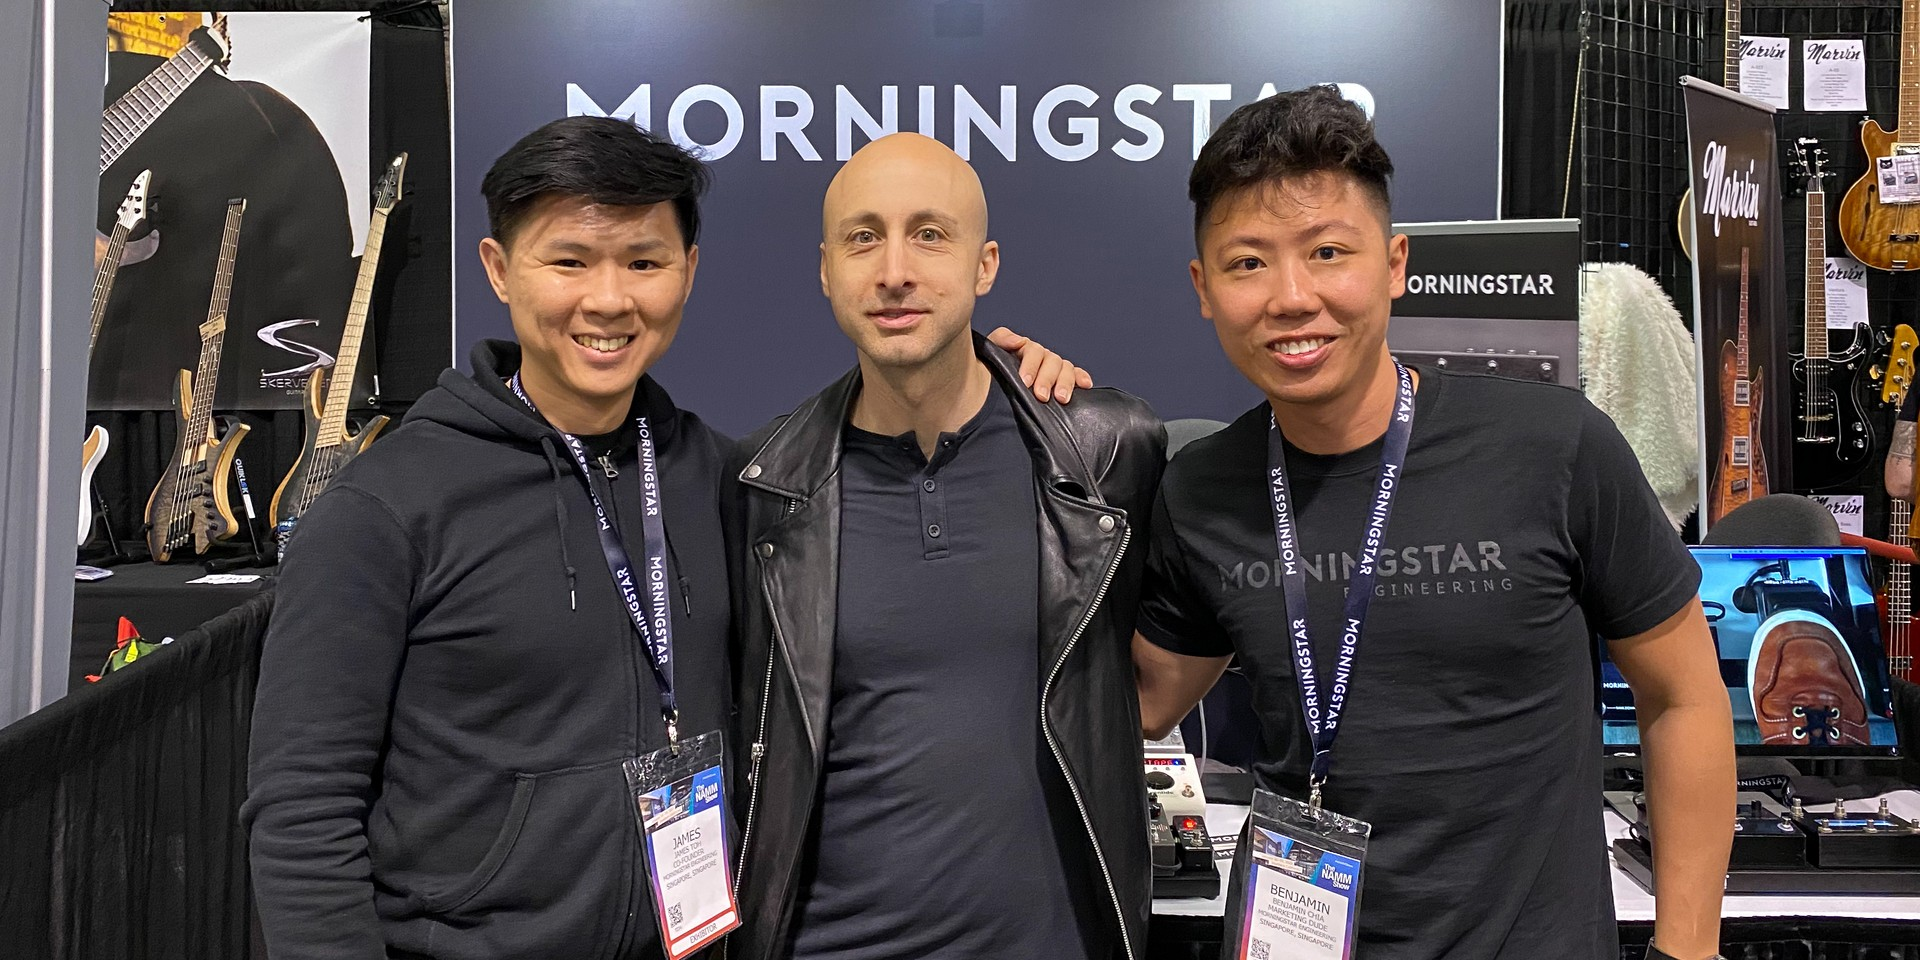 Sharing the stage with Ellie Goulding and Simple Plan - Singaporean MIDI controller makers Morningstar Engineering share their journey